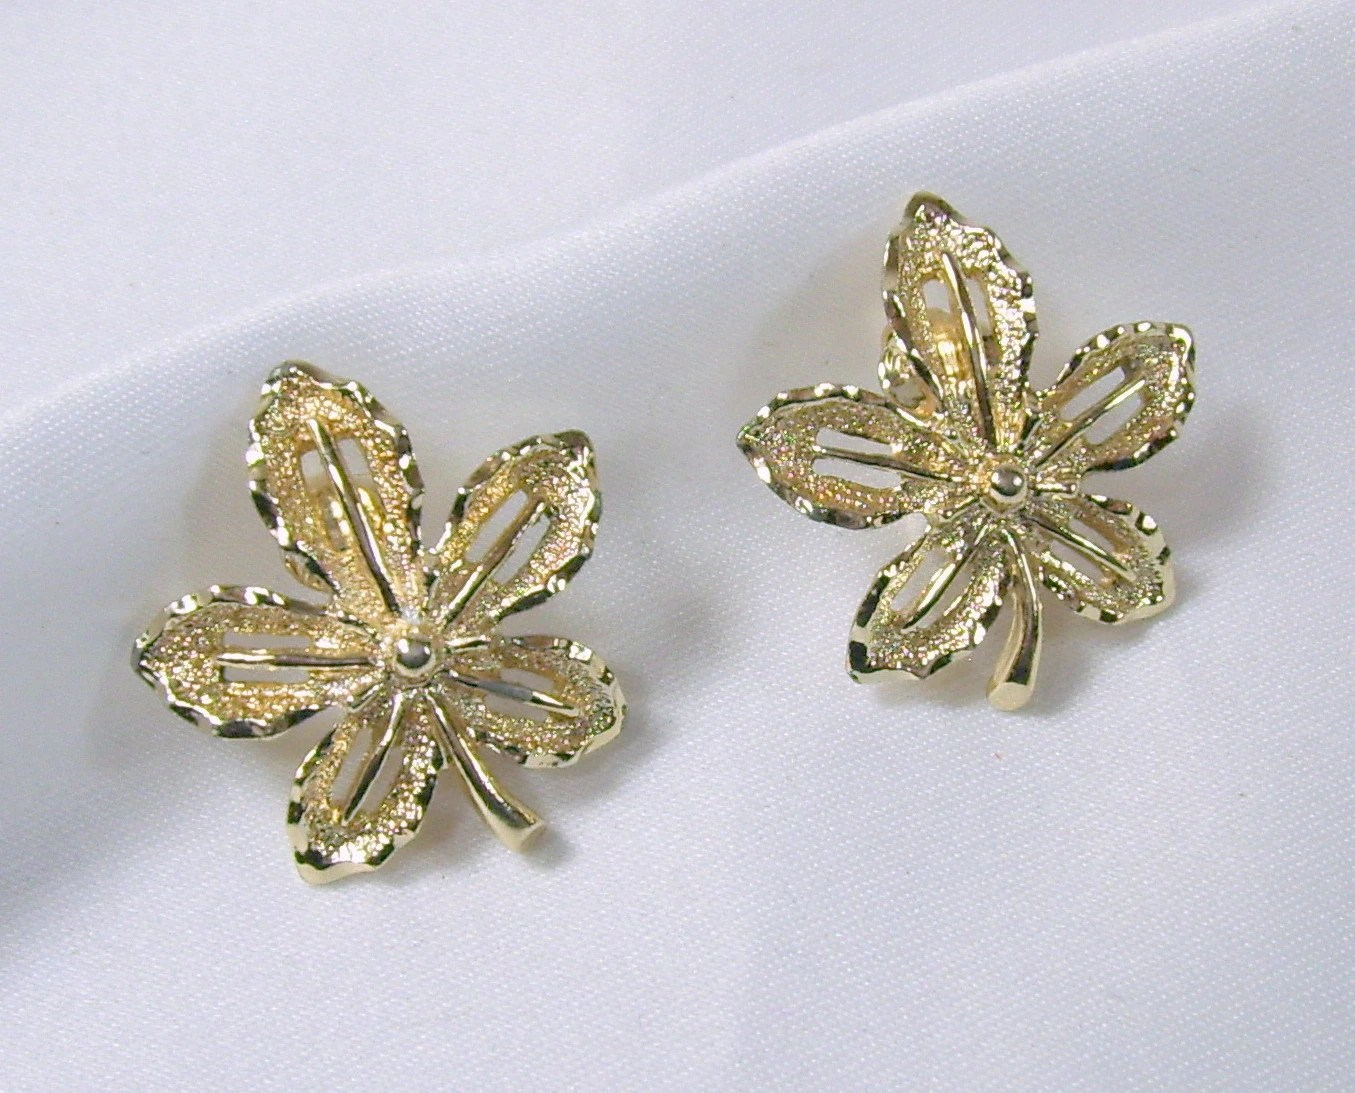 Vintage Sarah Coventry Earrings Clip On Gold Tone